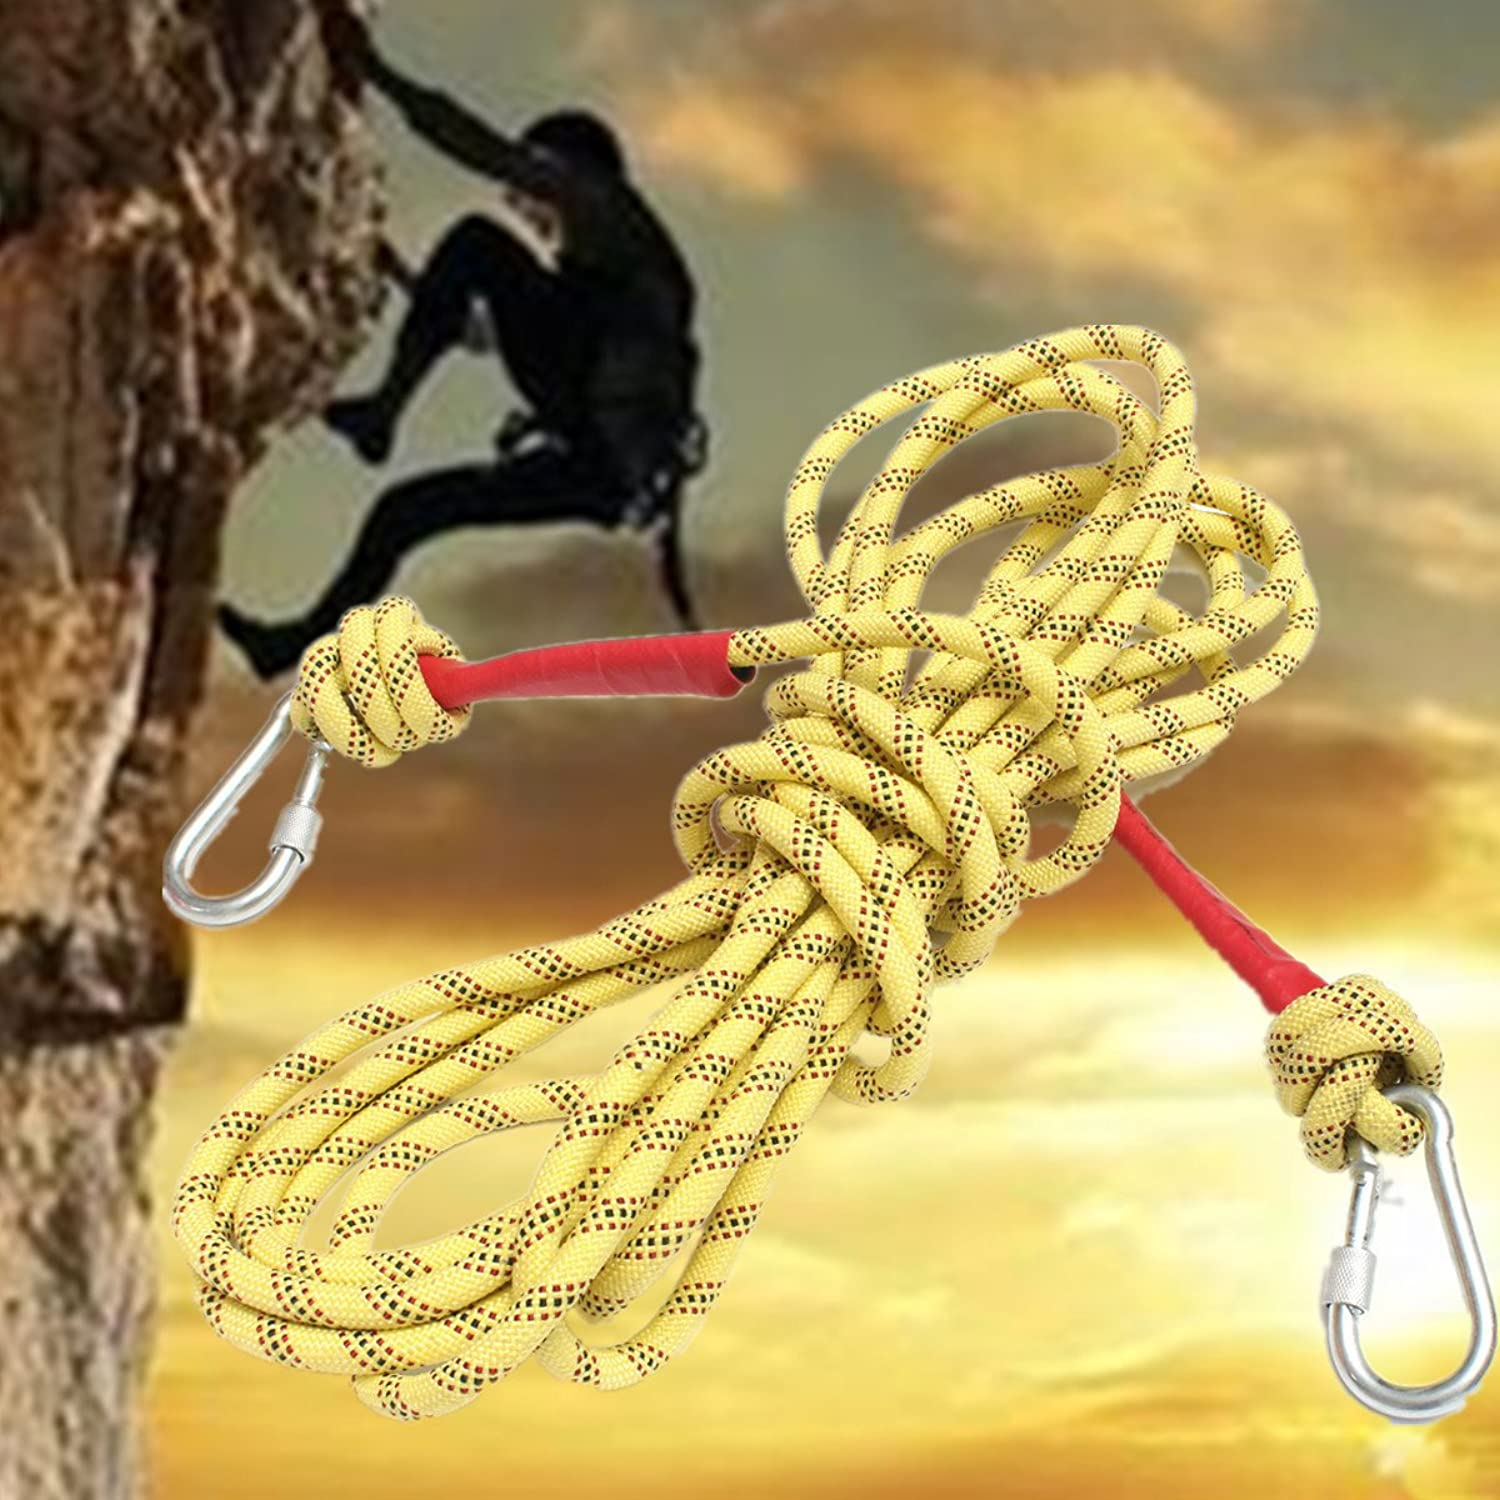 Bazaar 10M Rock Mountain Climbing Rope Outdoor Survival String Dynamic Paracord With Two Hooks